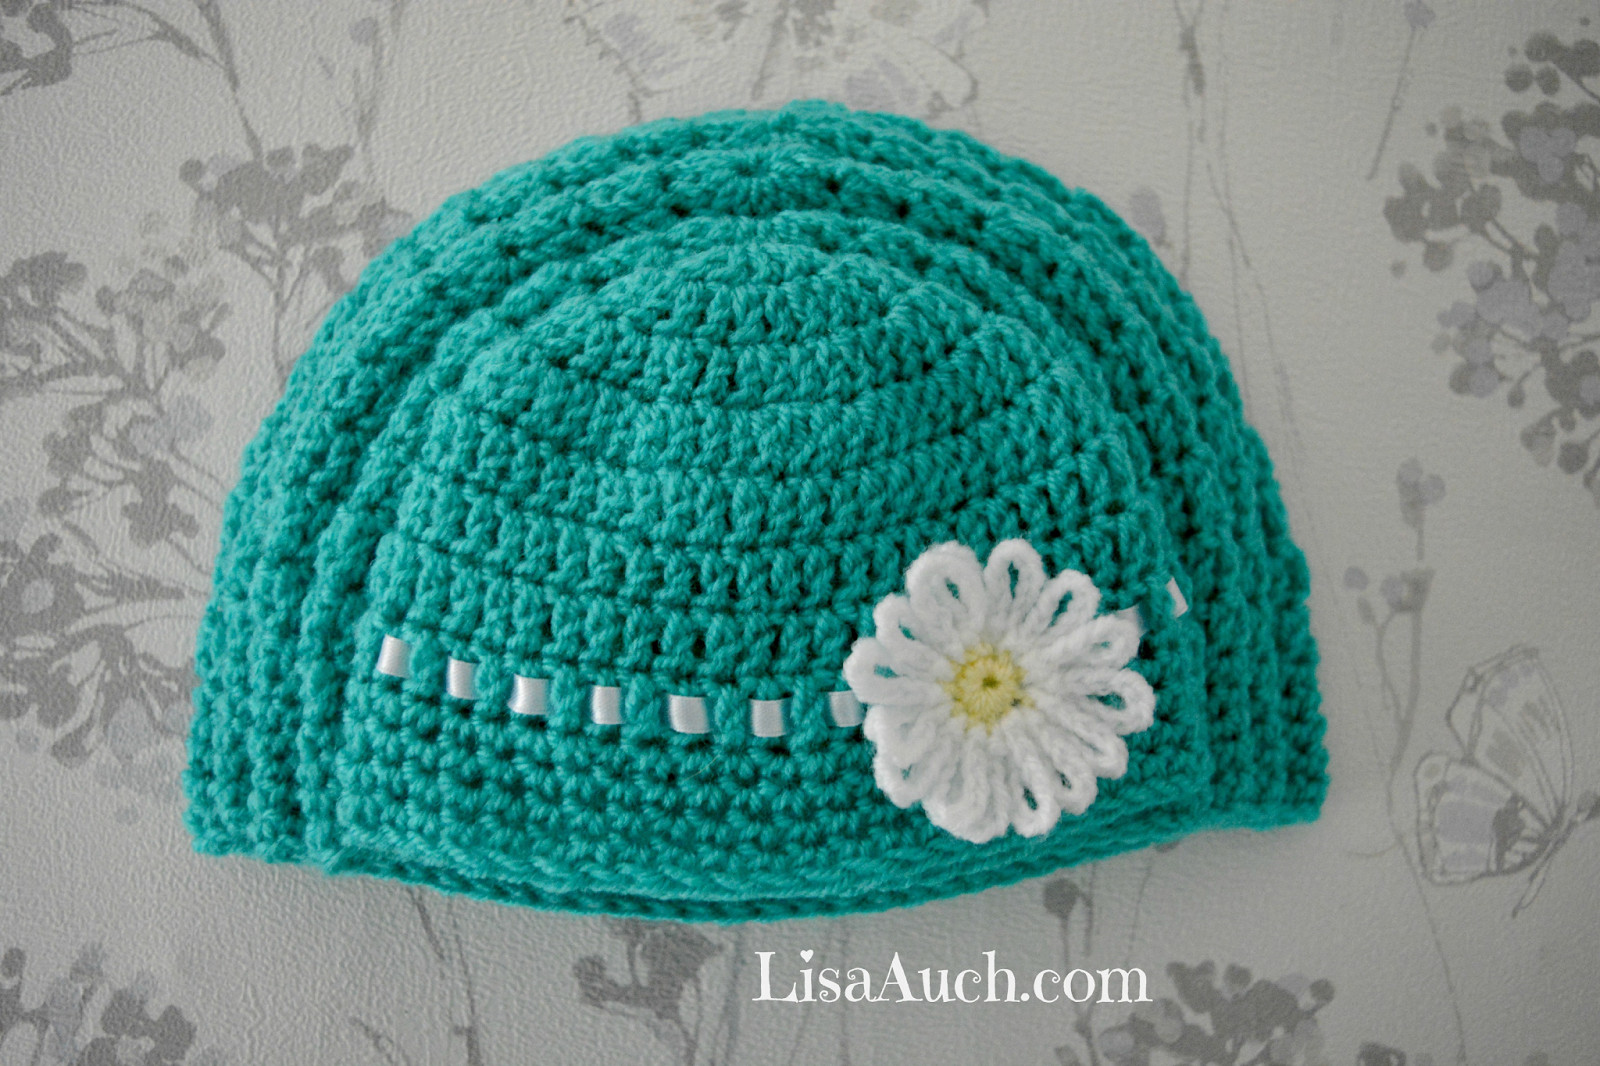 Best Of Free Easy Crochet Baby Hat Pattern with Crochet Flower Free Crochet Infant Hat Patterns Of Contemporary 50 Models Free Crochet Infant Hat Patterns